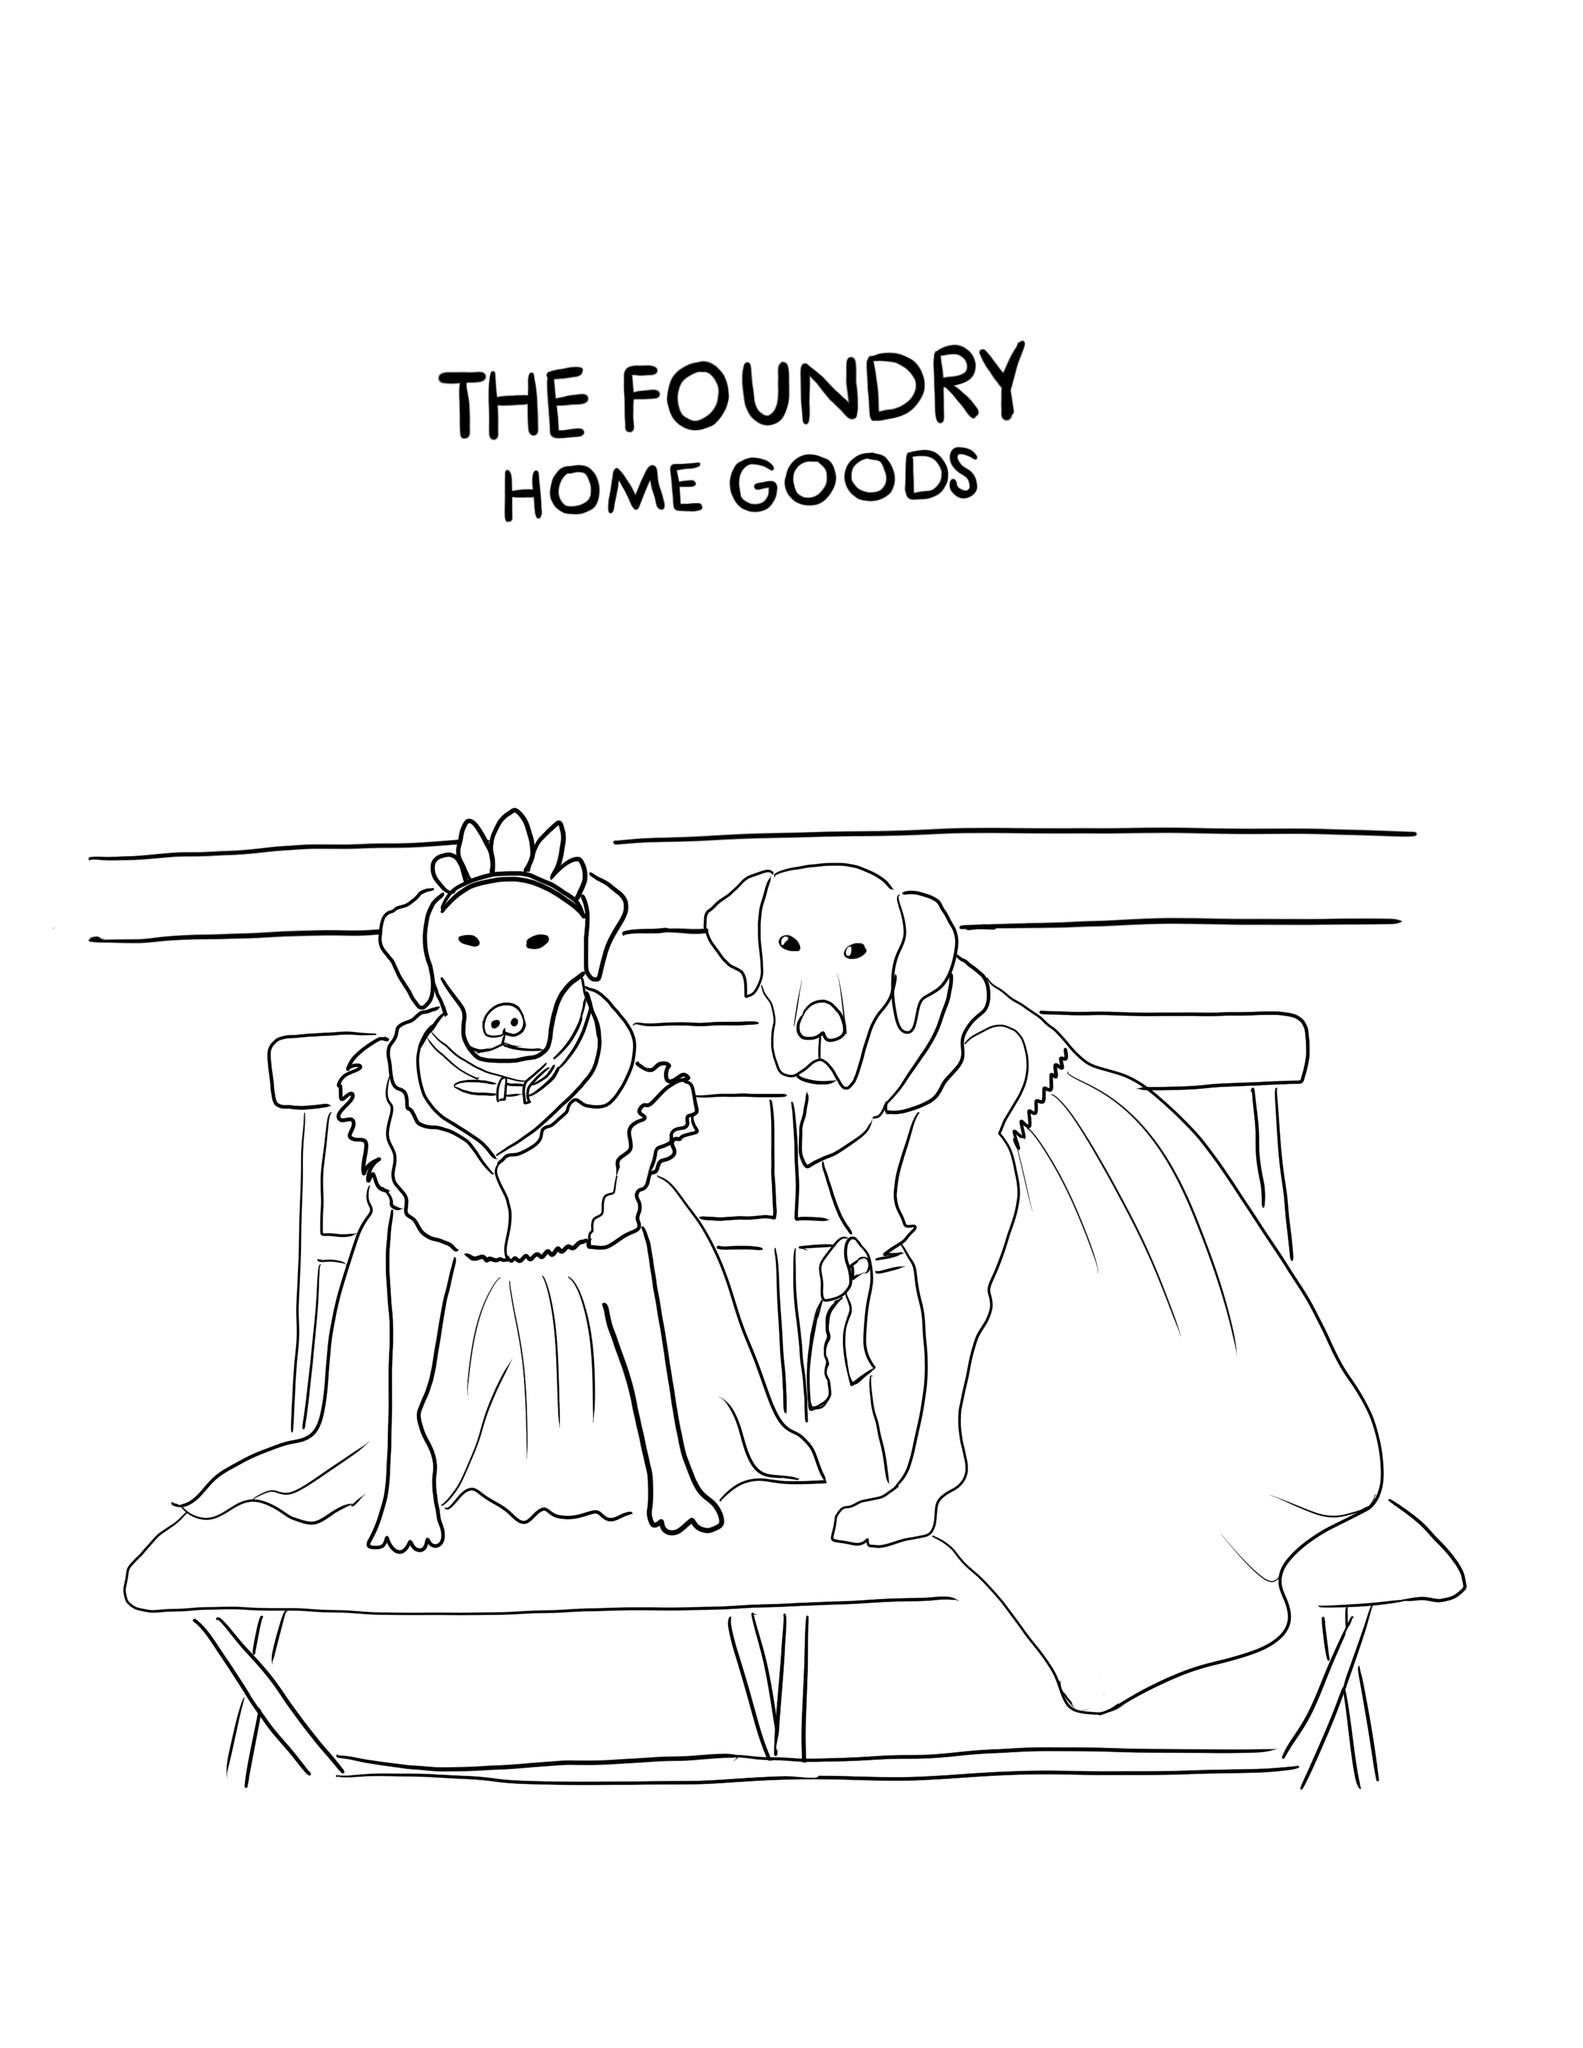 The Foundry At Home: Printable Foundry-Made SHOPDOG Coloring Pages!